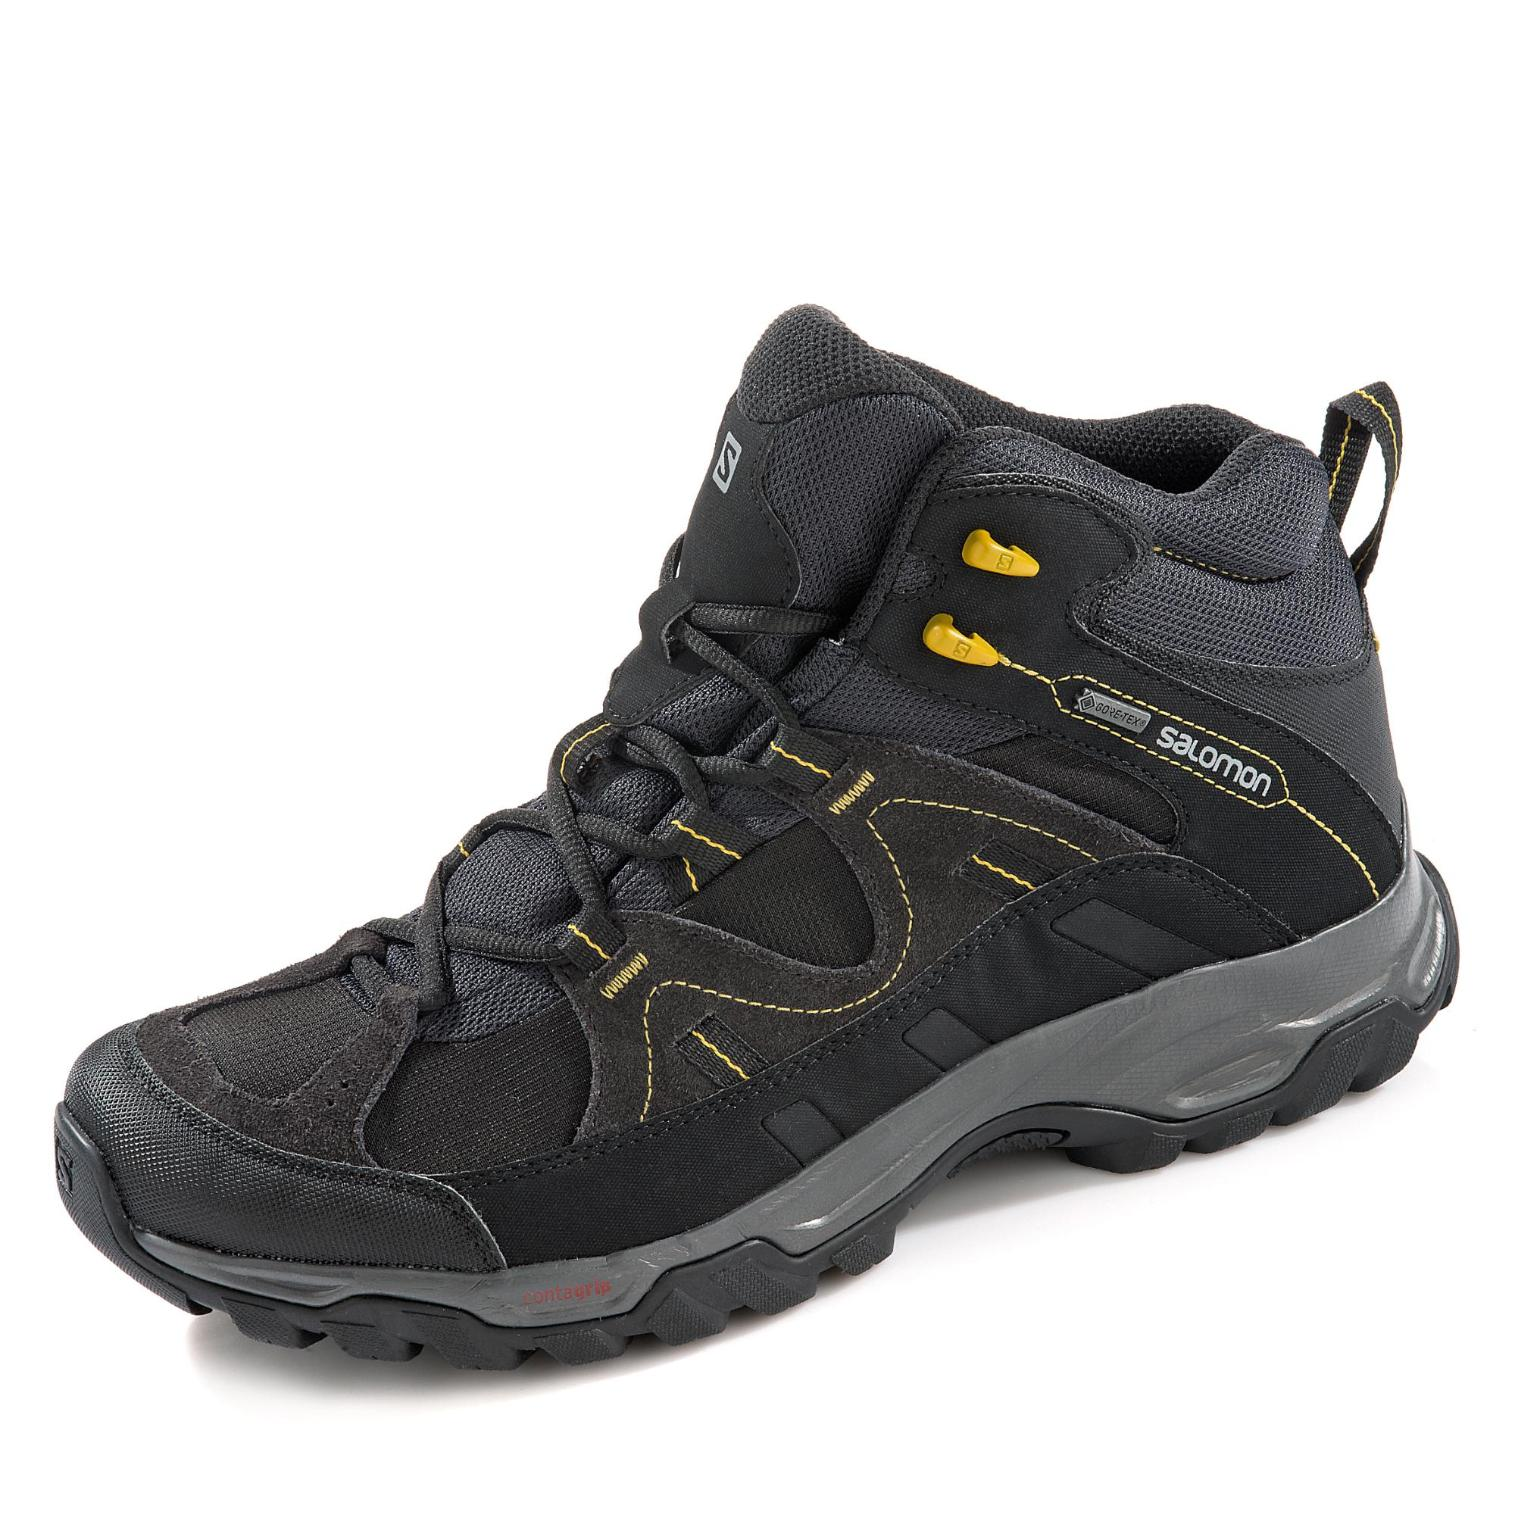 Salomon Meadow Mid GORE-TEX Outdoorschuh in Farbe schwarz